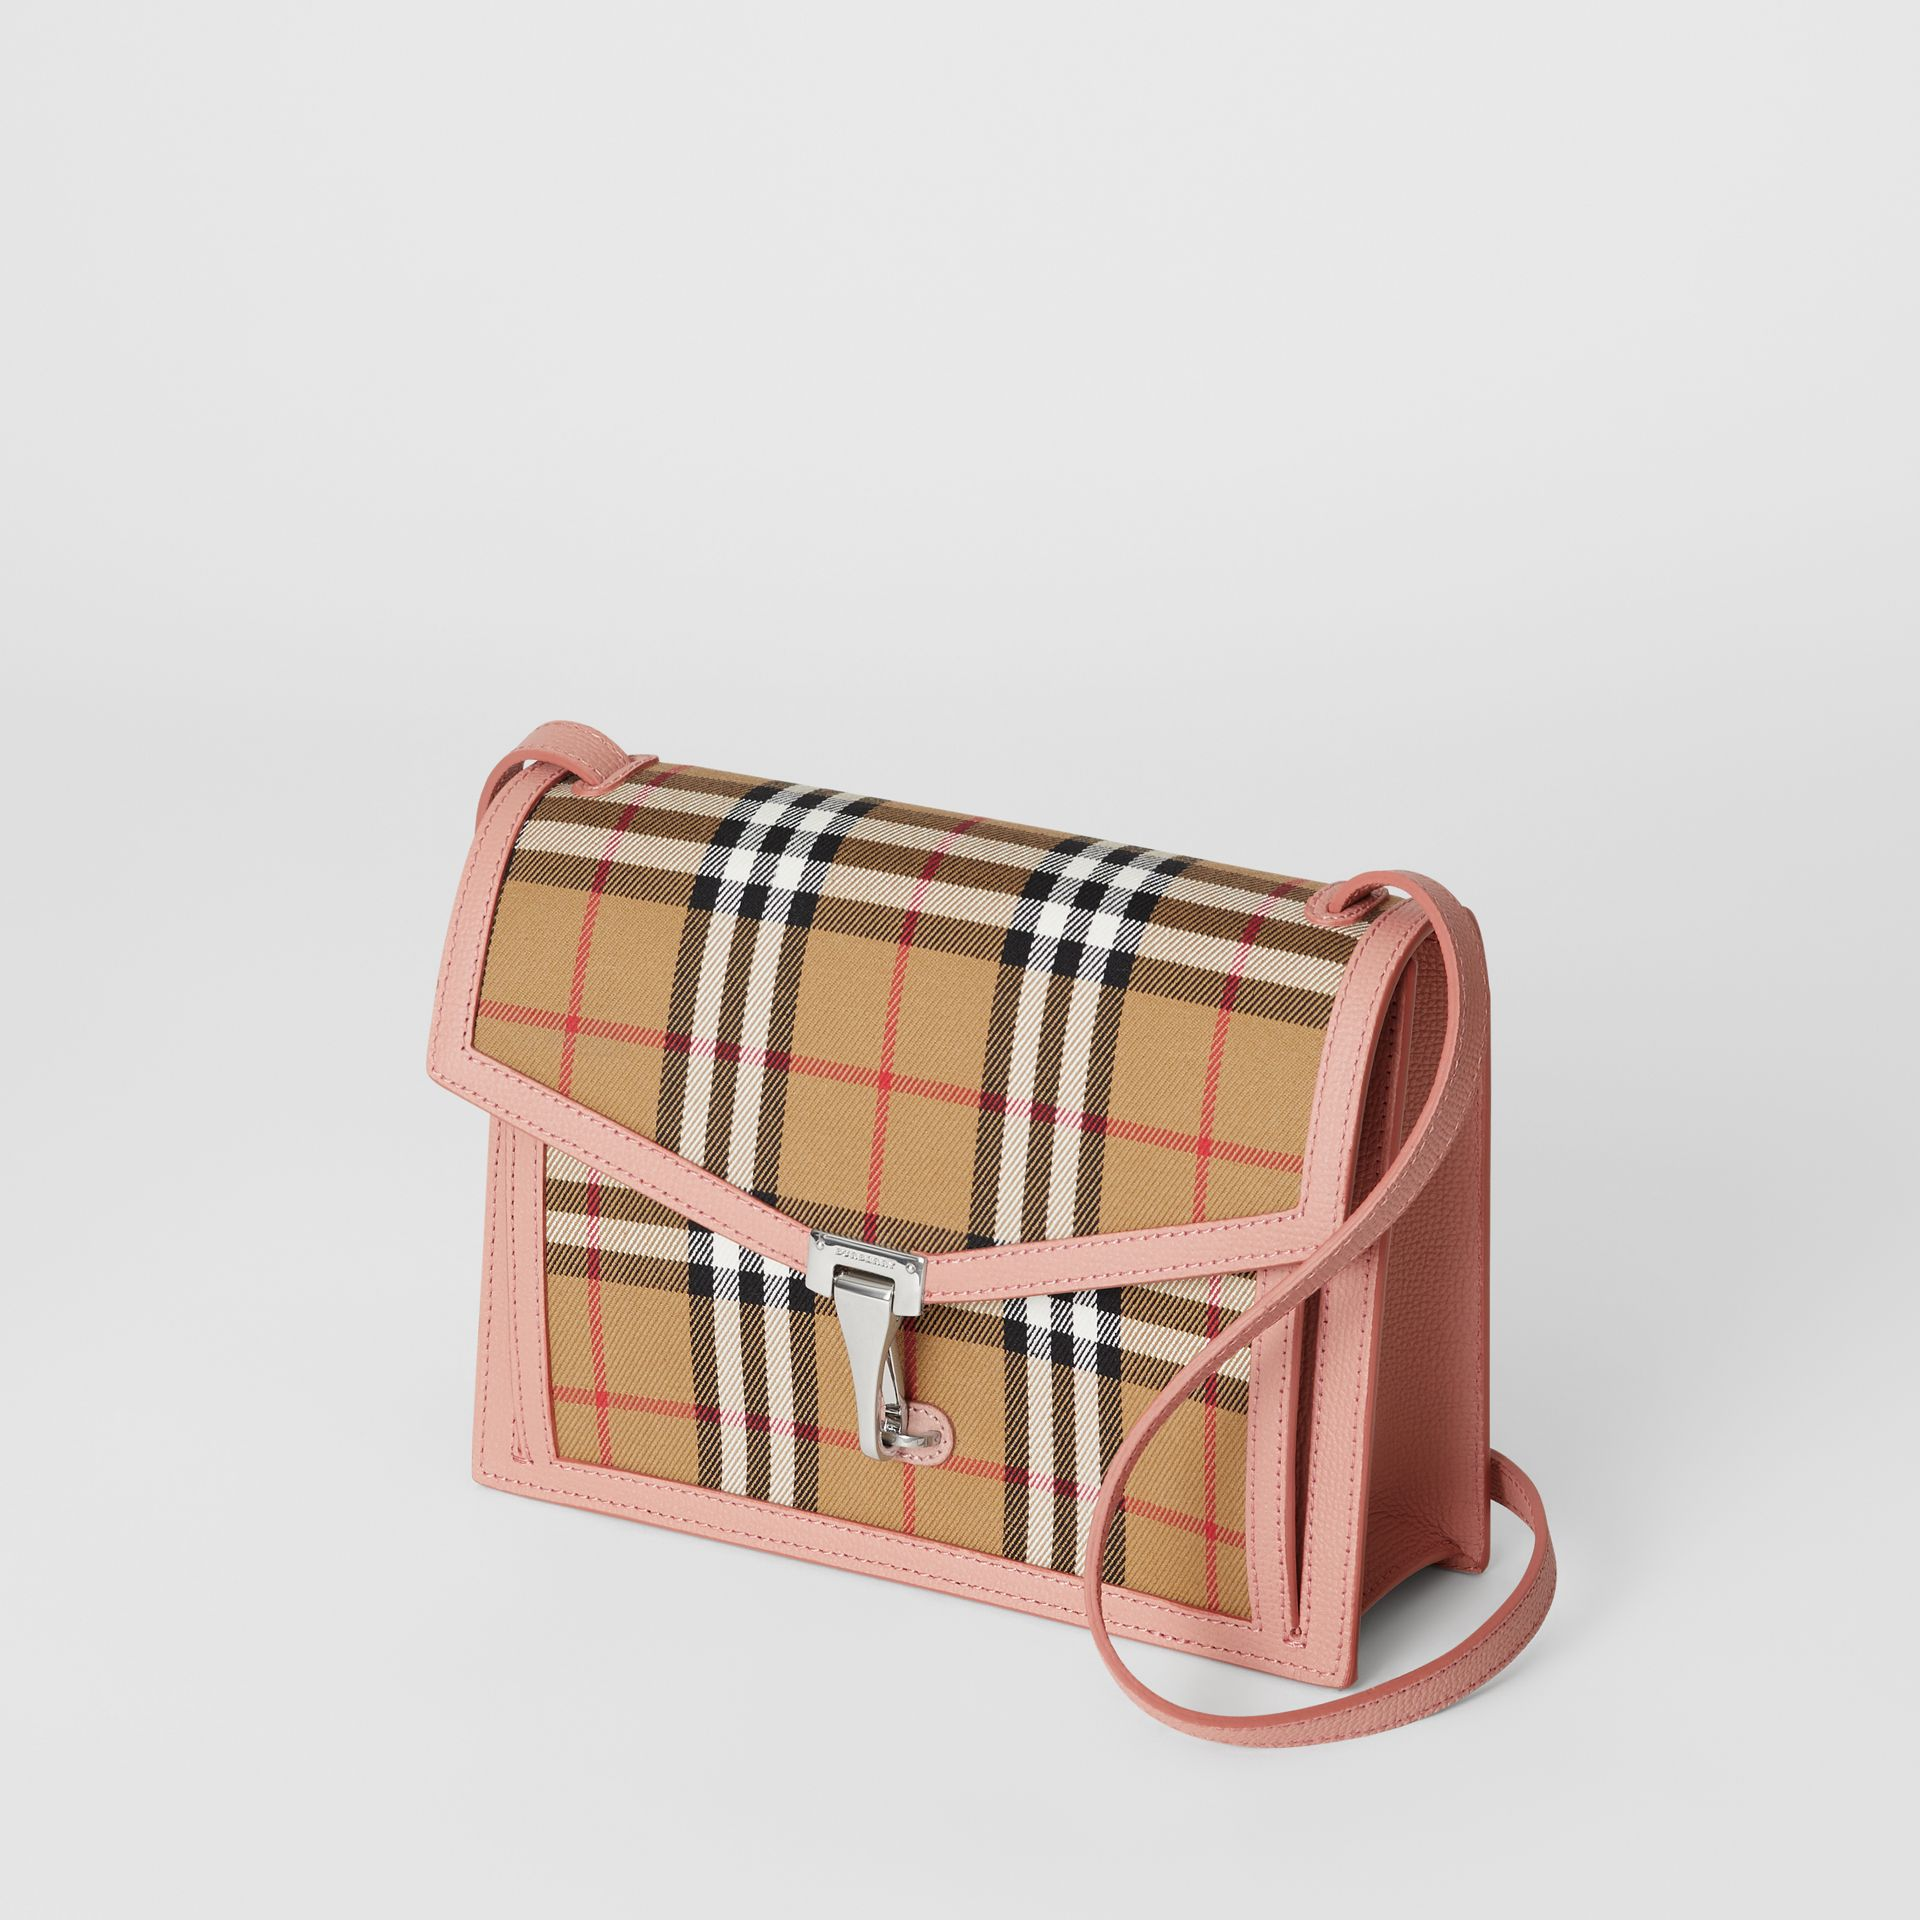 Small Vintage Check and Leather Crossbody Bag in Ash Rose - Women | Burberry Singapore - gallery image 4